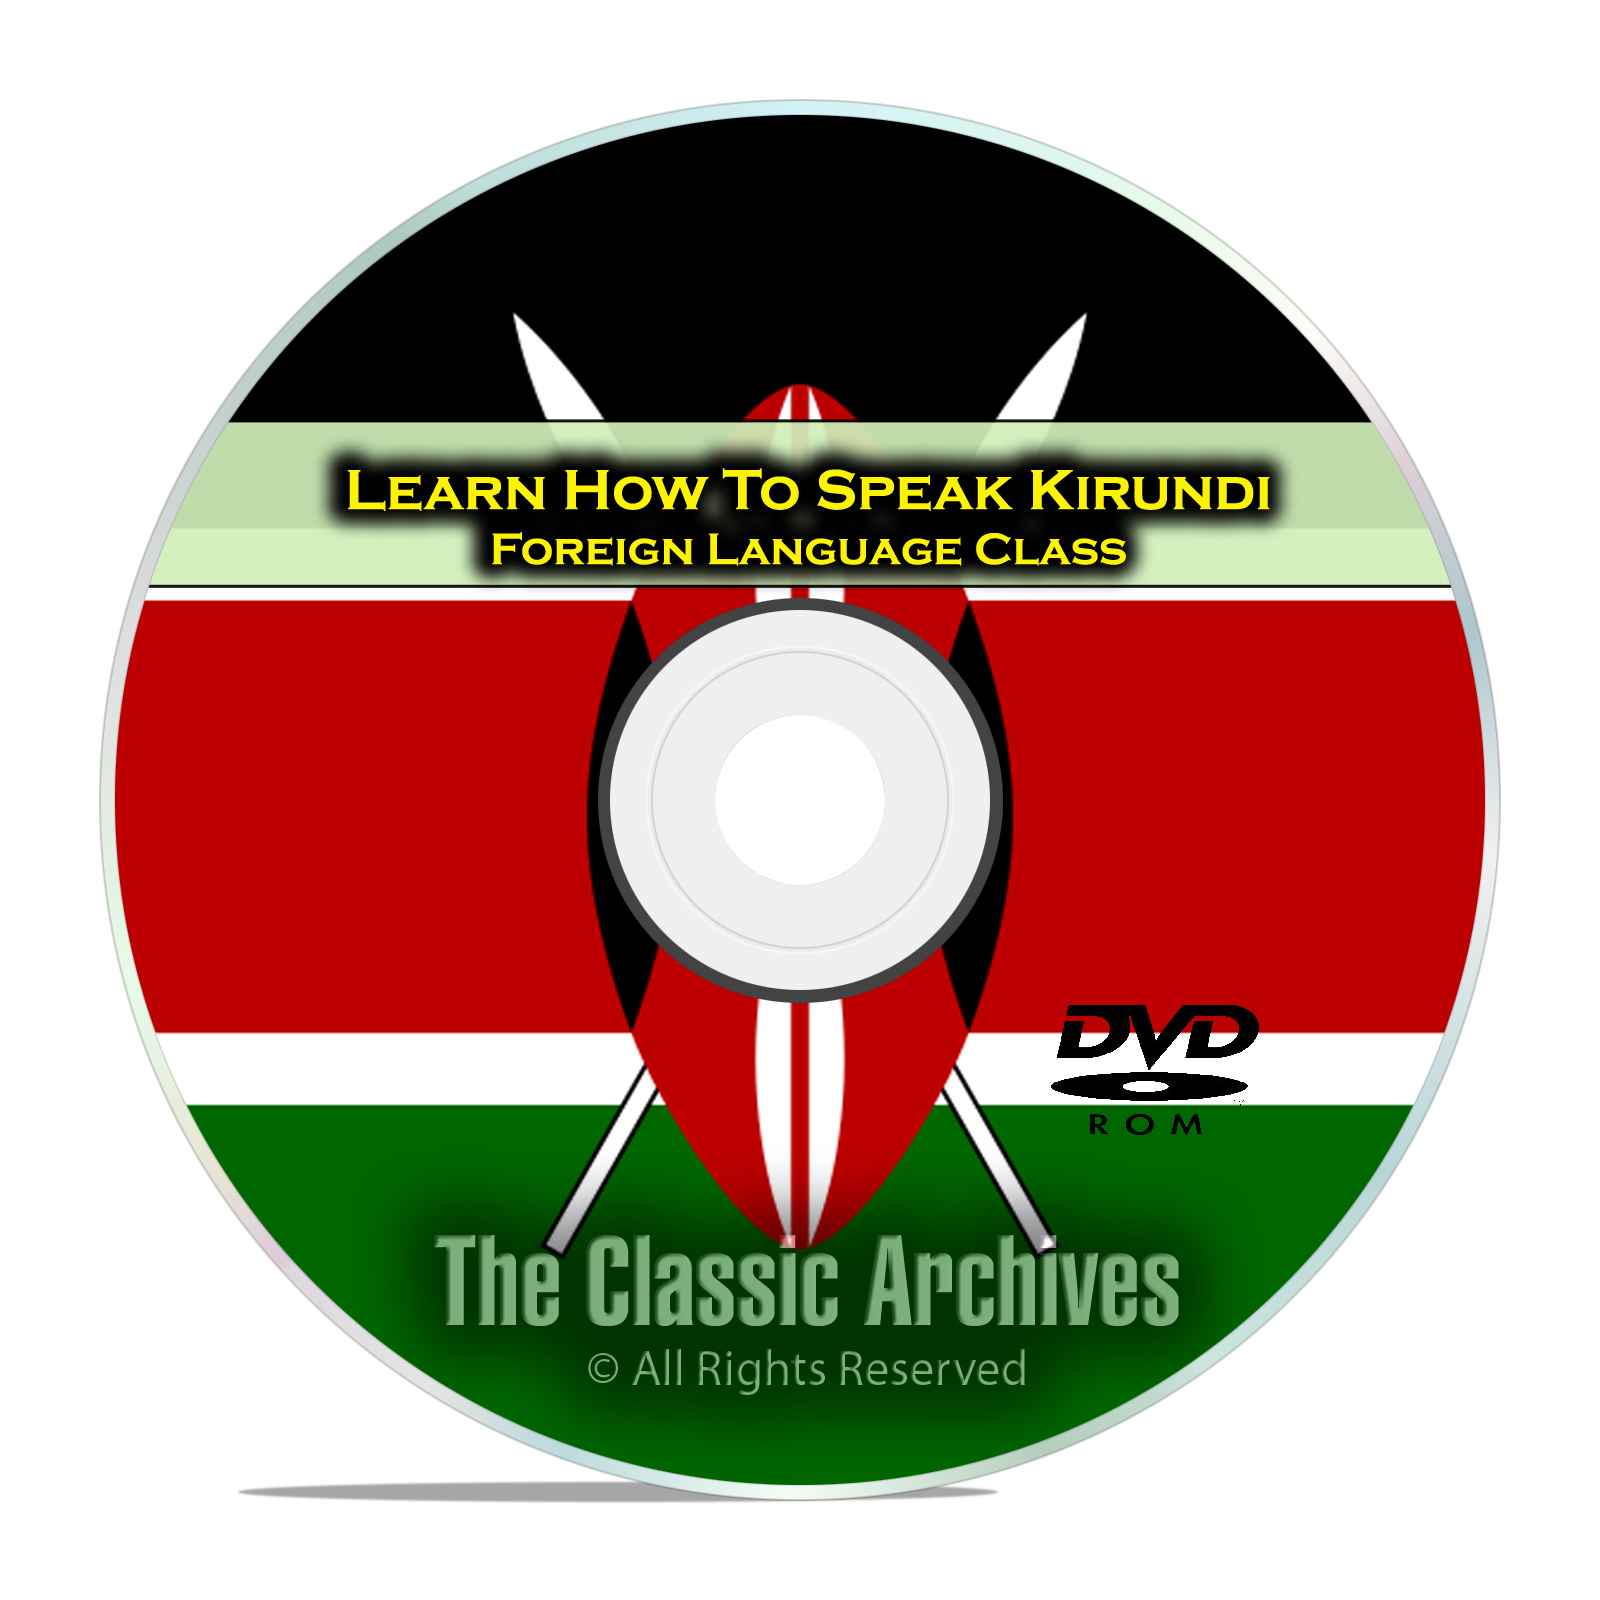 Learn How To Speak Kirundi, Fast Foreign Language Training Course, DVD